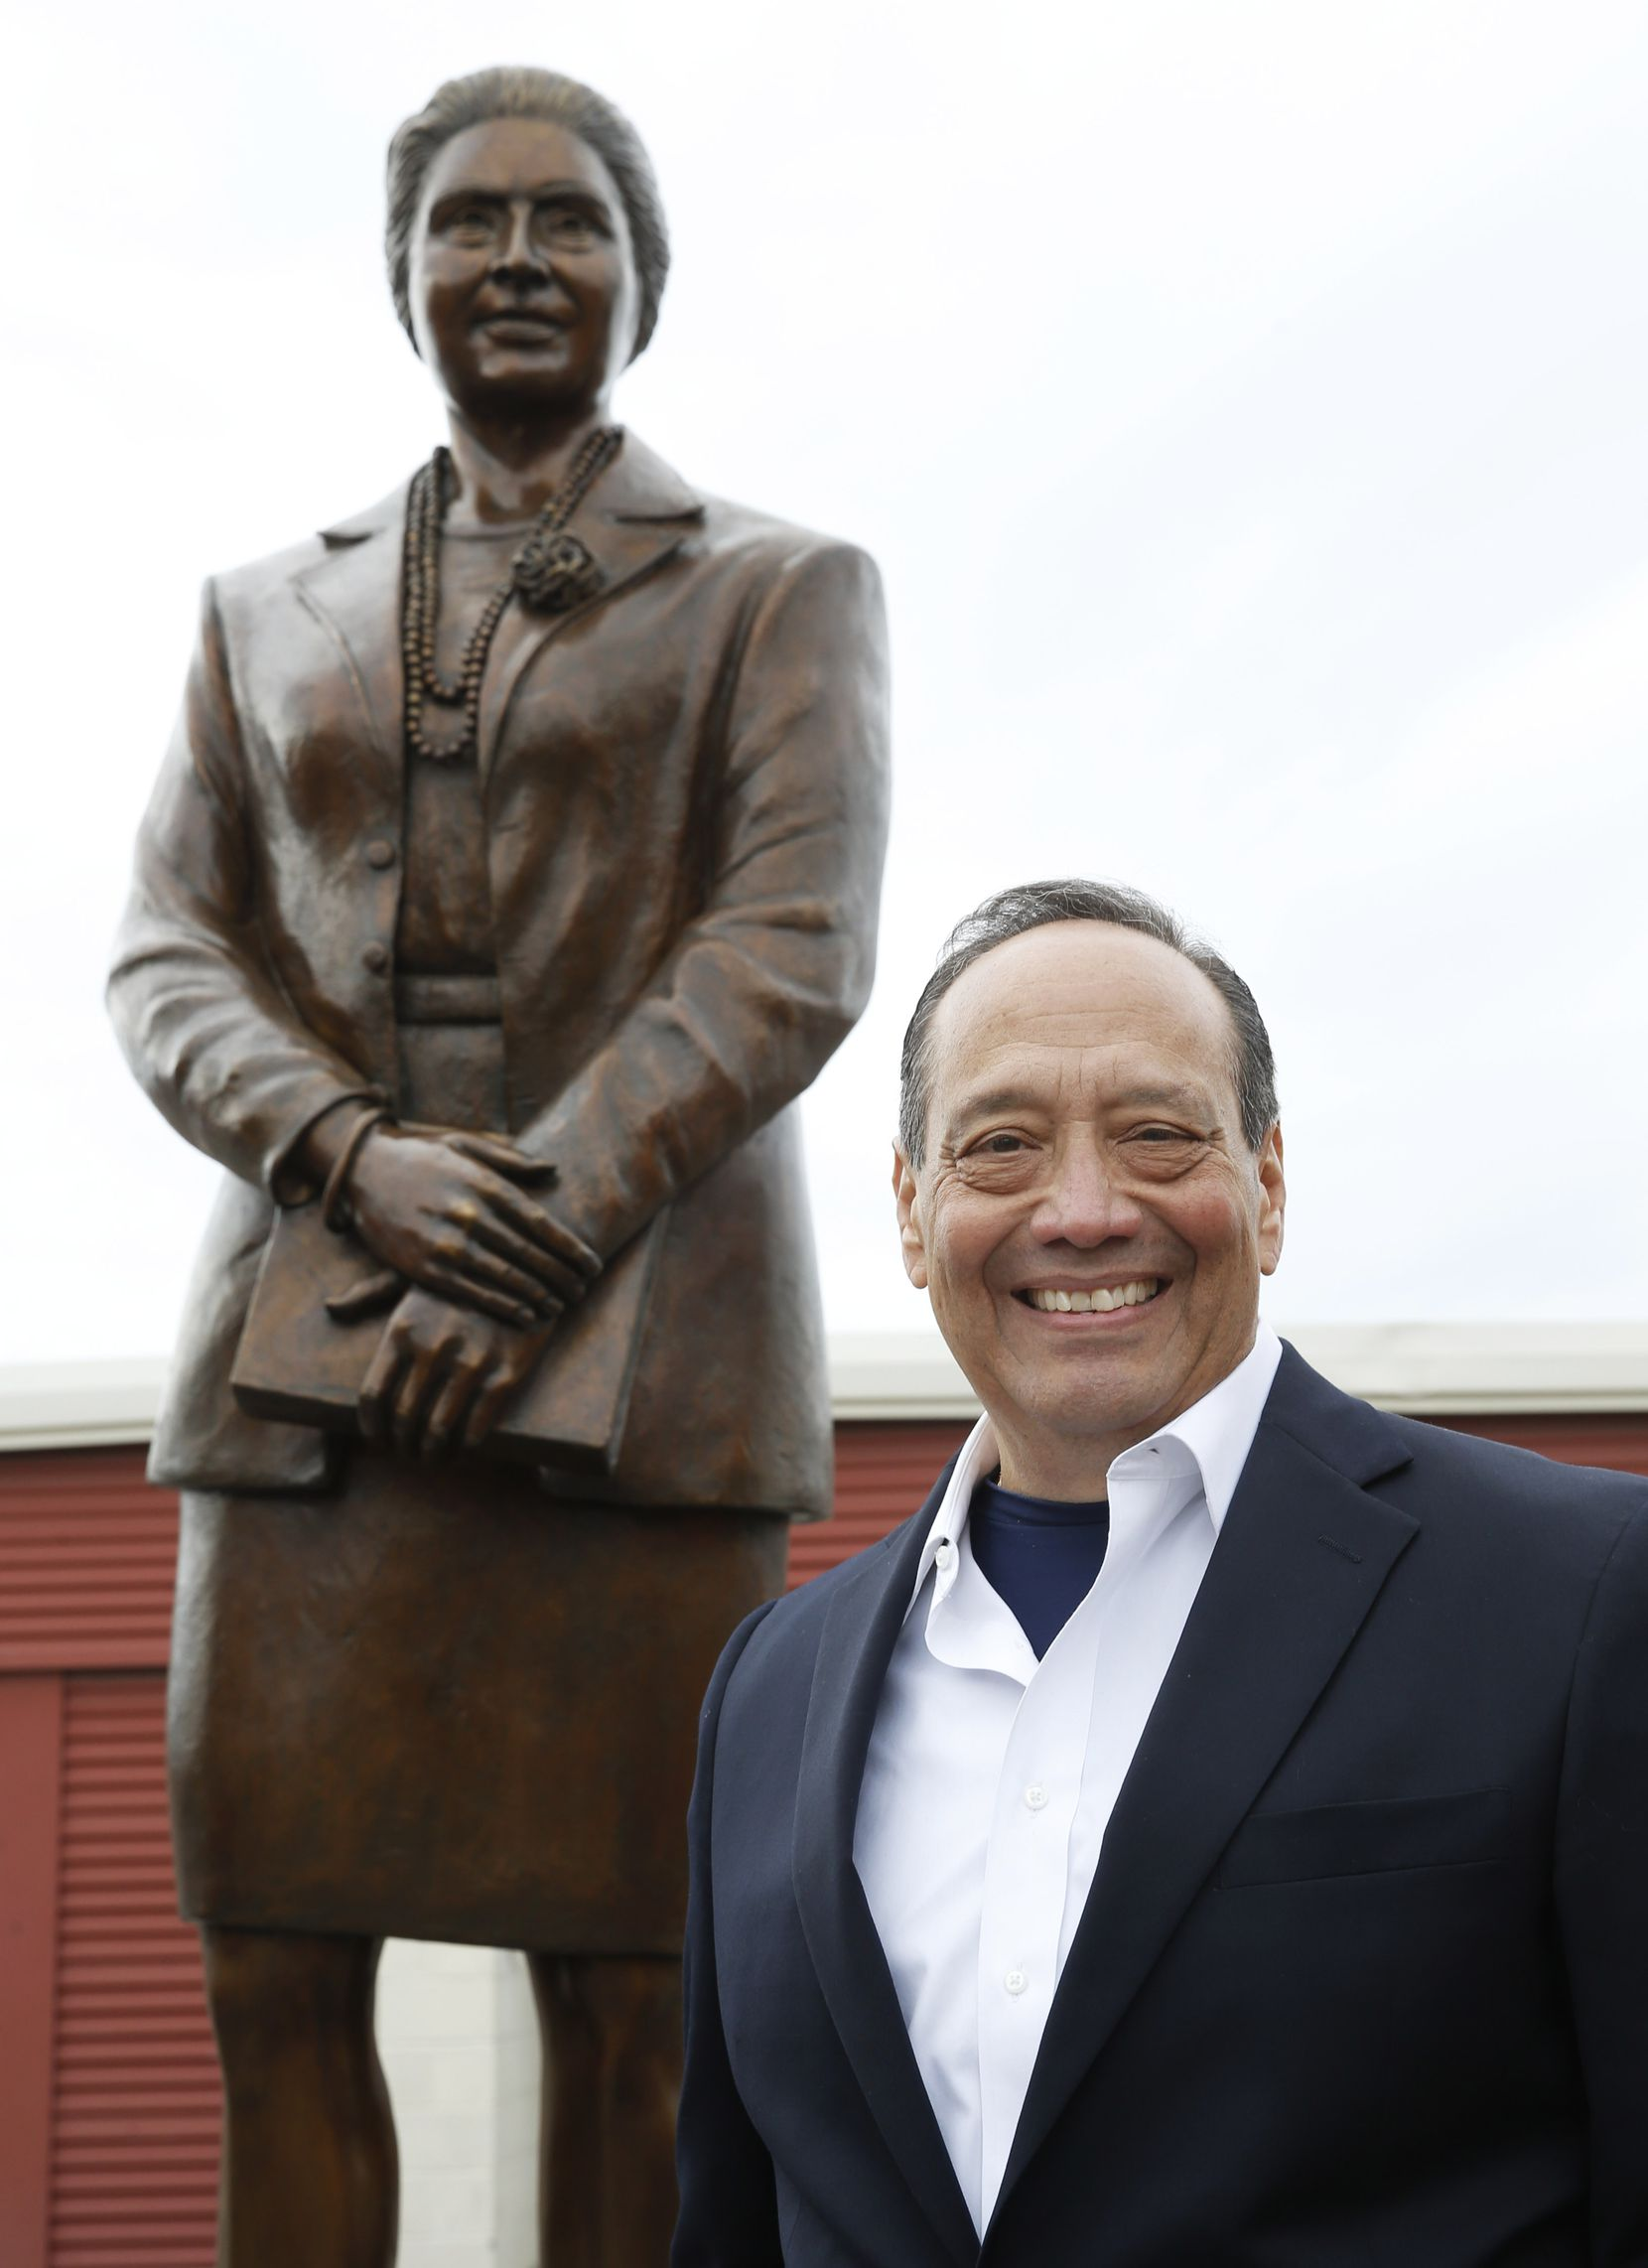 JD Gonzales poses for a portrait next to a statue of Adelfa B. Callejo statue by artist German Michel at a storage facility in Dallas on Wednesday. Adelfa Callejo was a fierce civil rights defender and lawyer who died nearly 6 years ago. Gonzales is Adelfa's nephew.